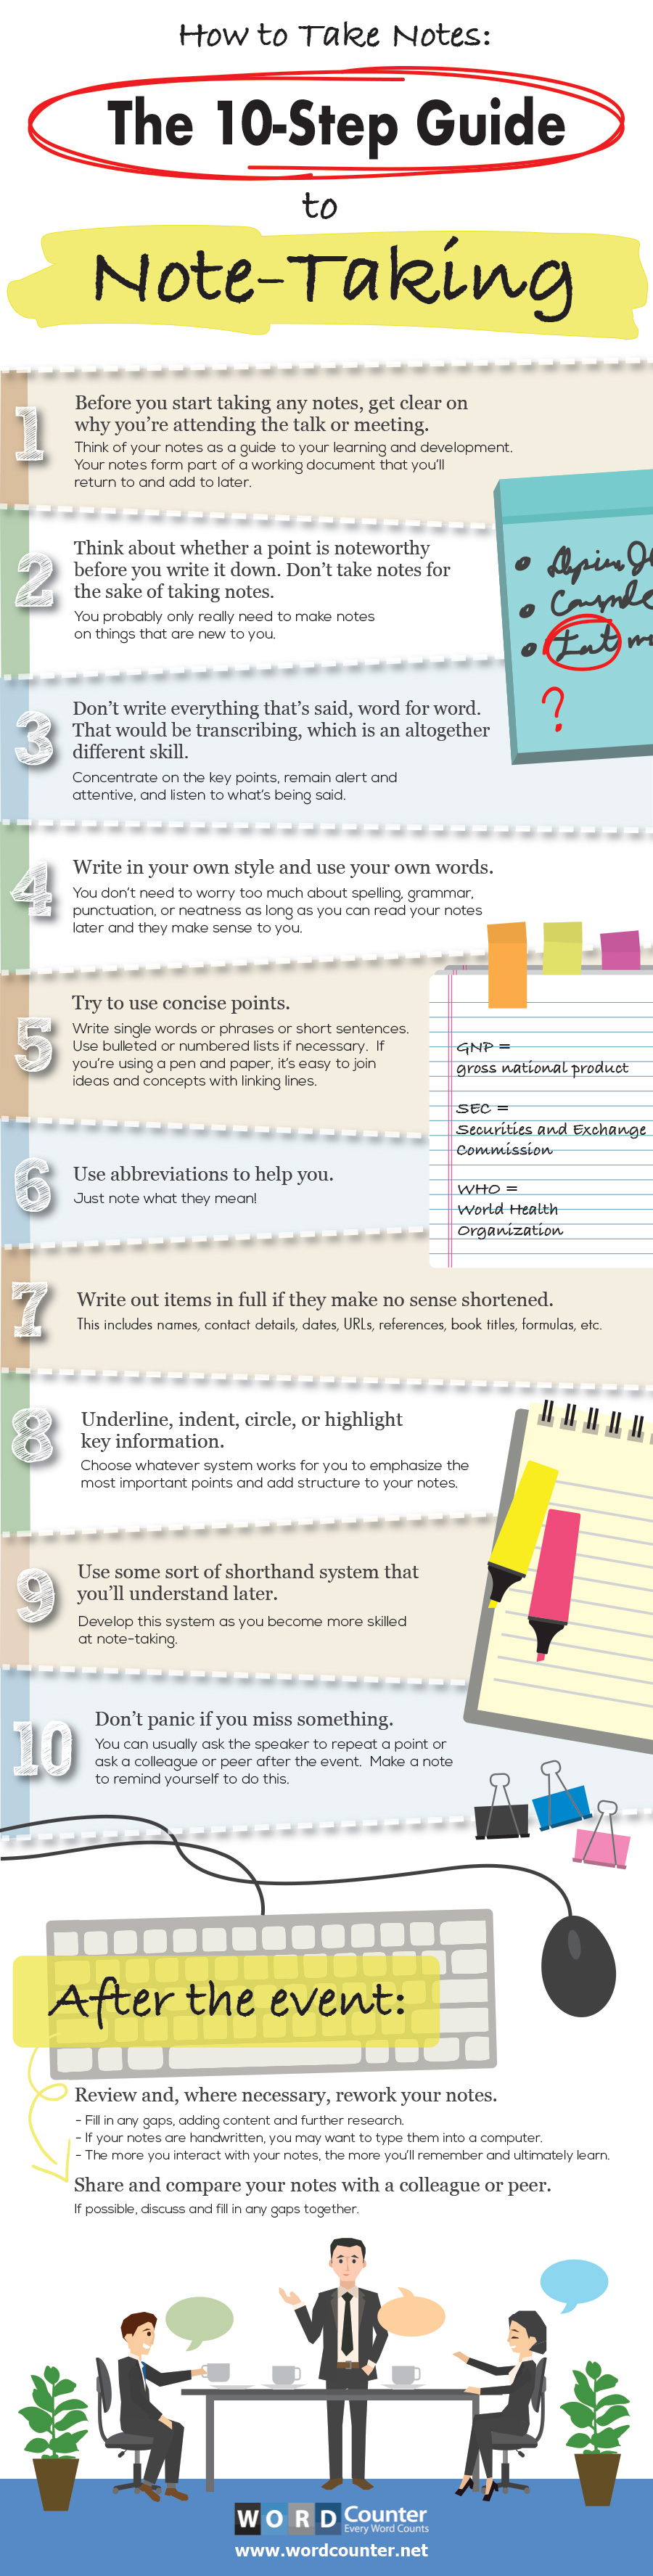 How to Write Notes Infographic